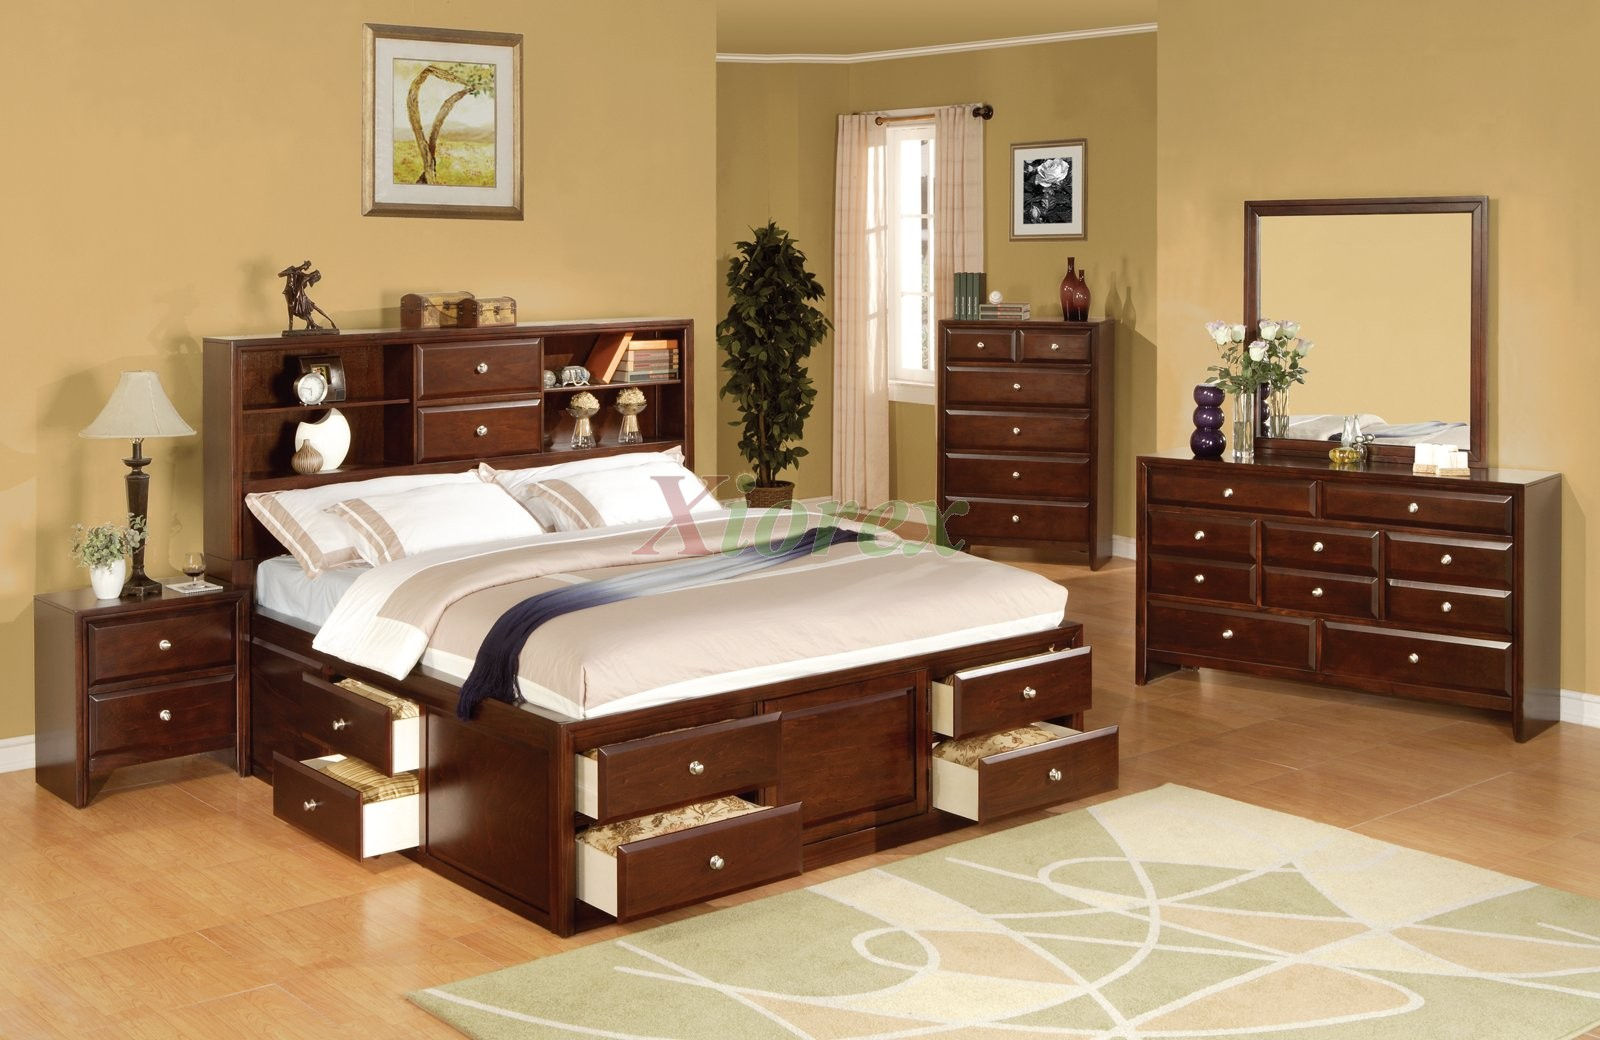 Bookcase and Storage Bedroom Furniture Set 11  Xiorex